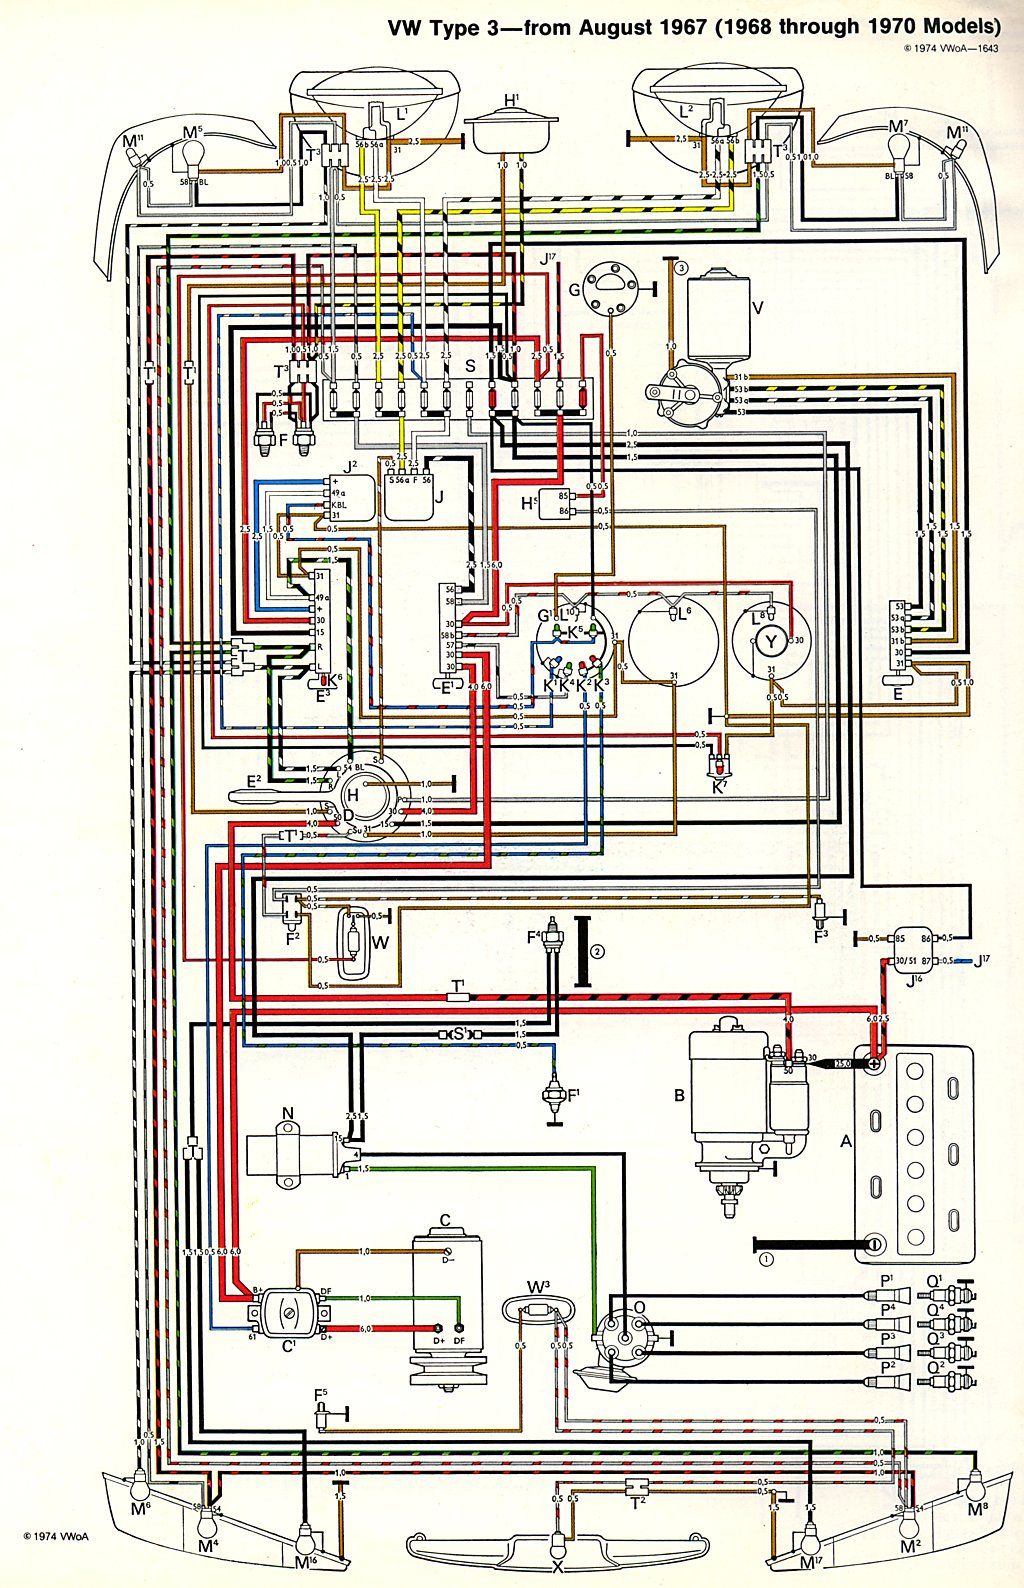 type3_6870 vw thing wiring diagram 1974 beetle heater diagram \u2022 wiring 1971 vw bus wiring diagram at aneh.co